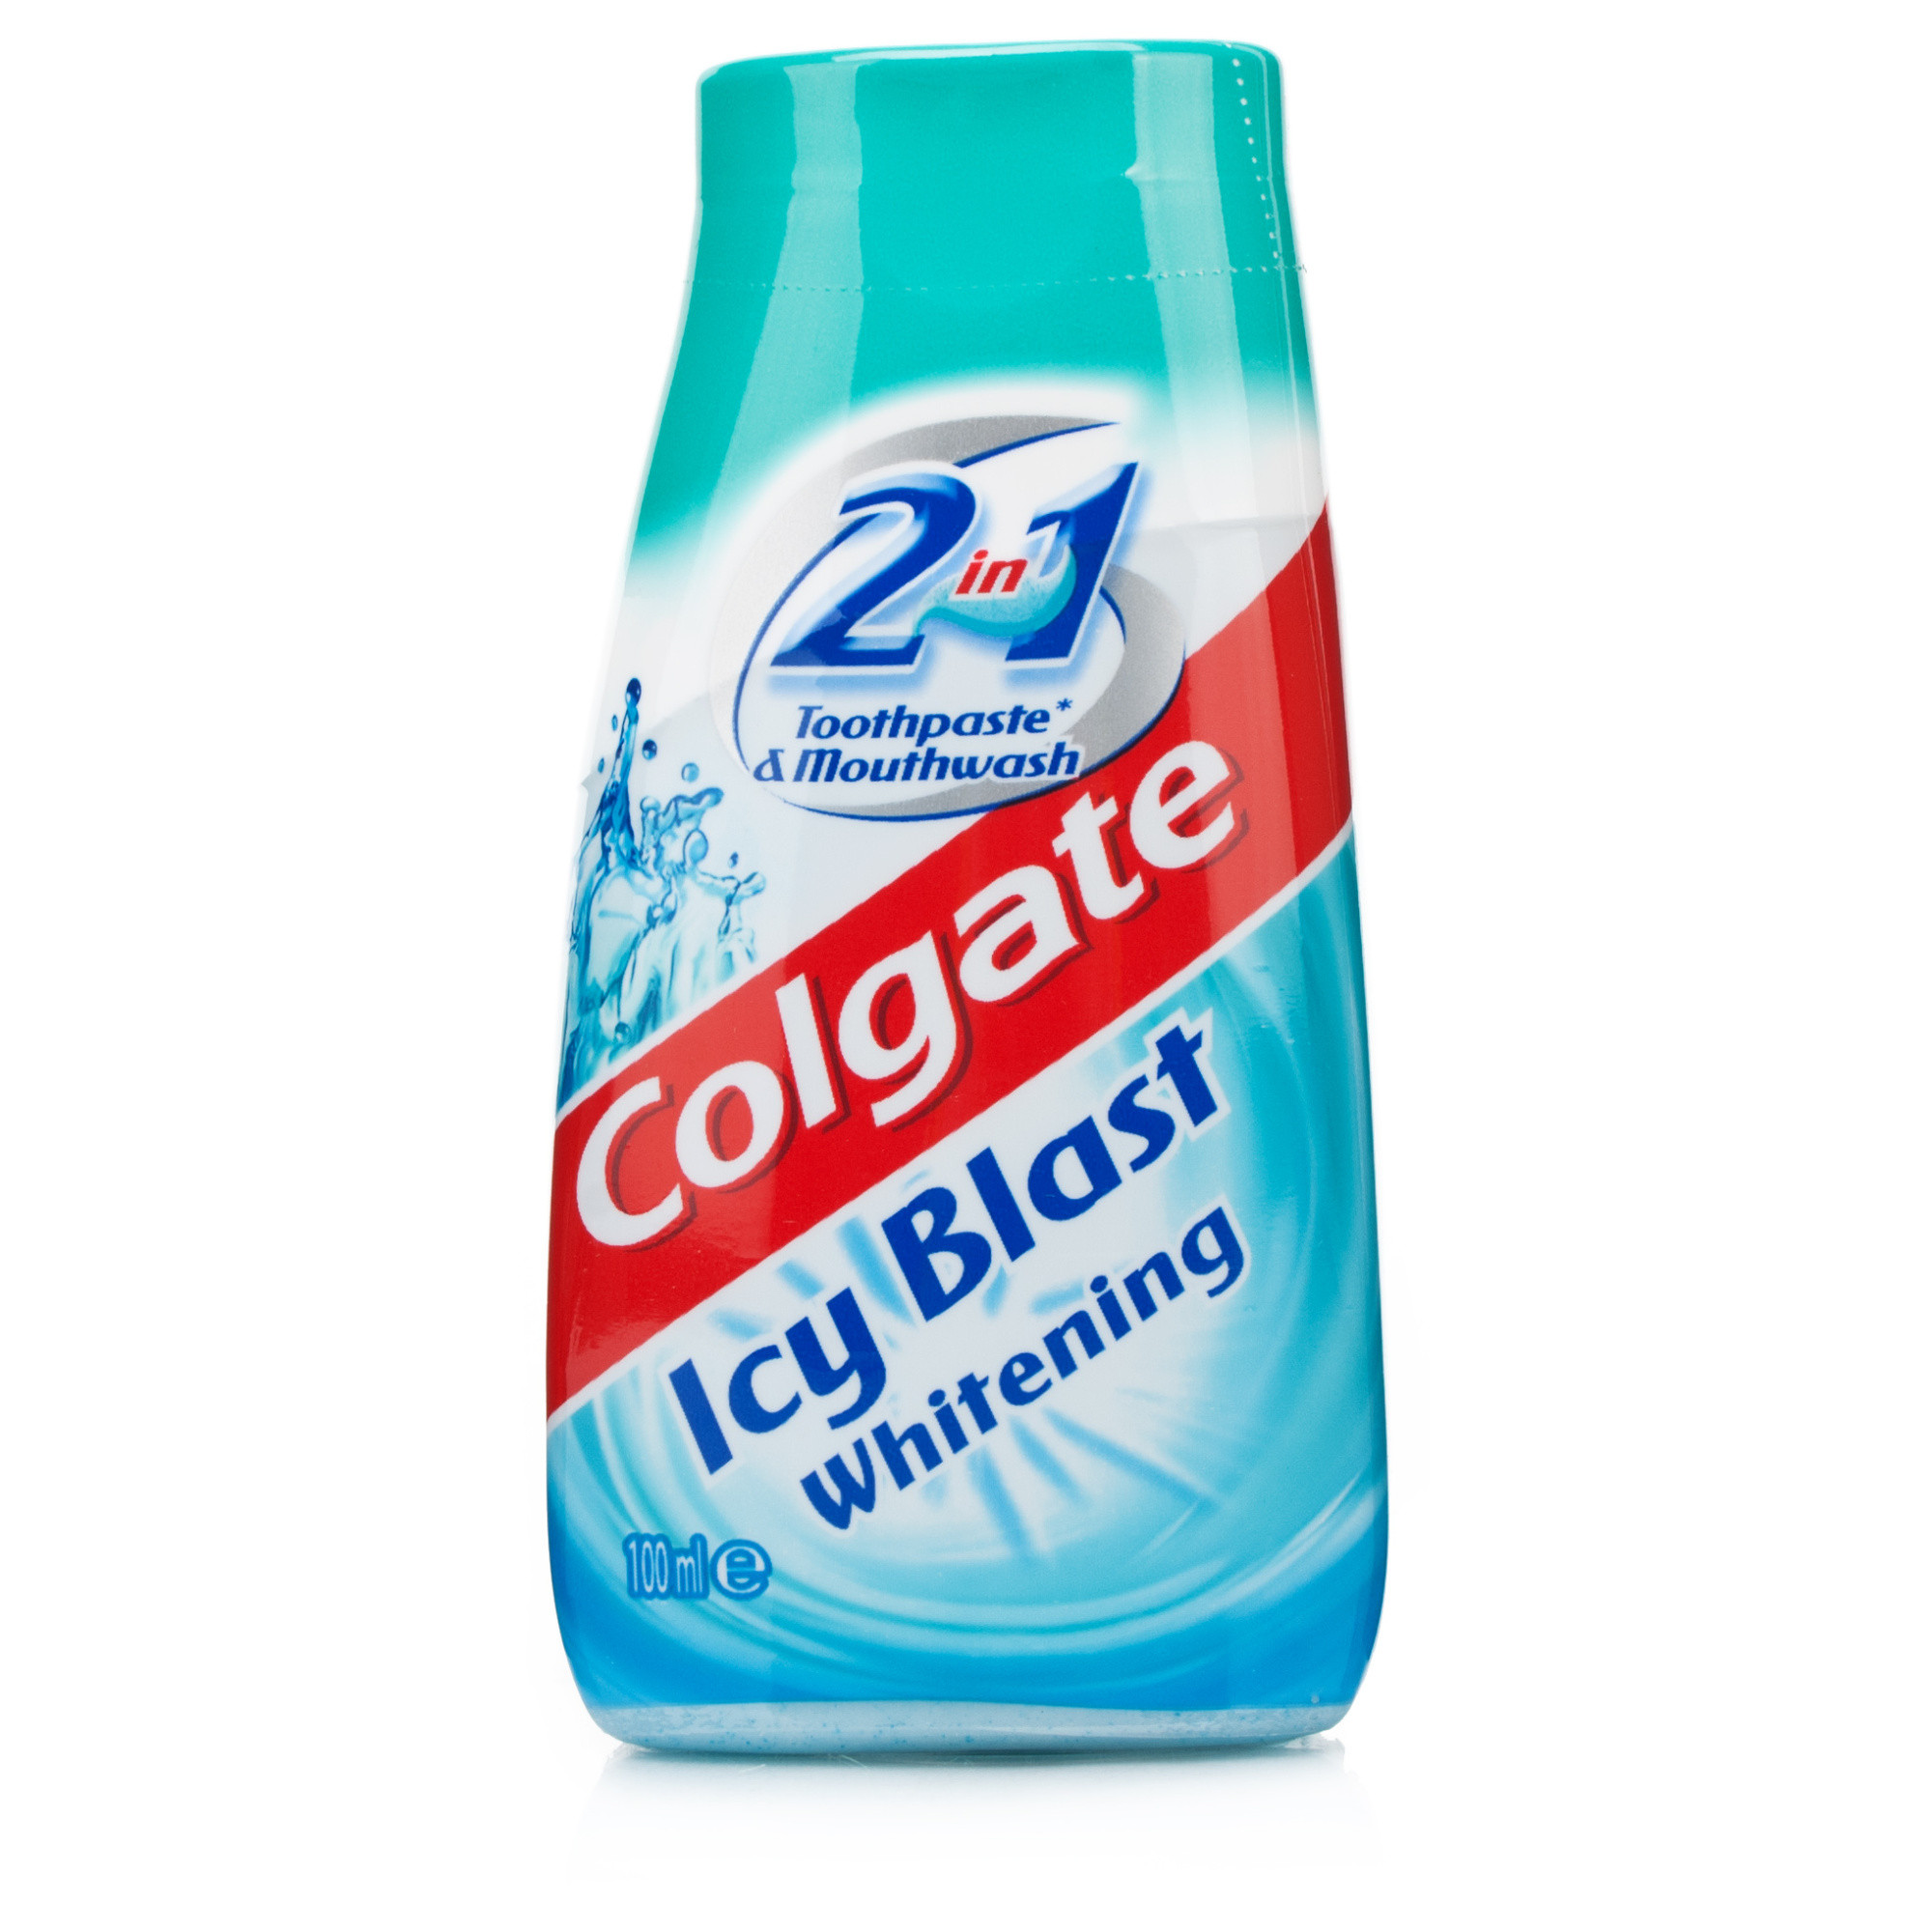 Colgate 2 in 1 Icy Blast Whitening Toothpaste & Mouthwash